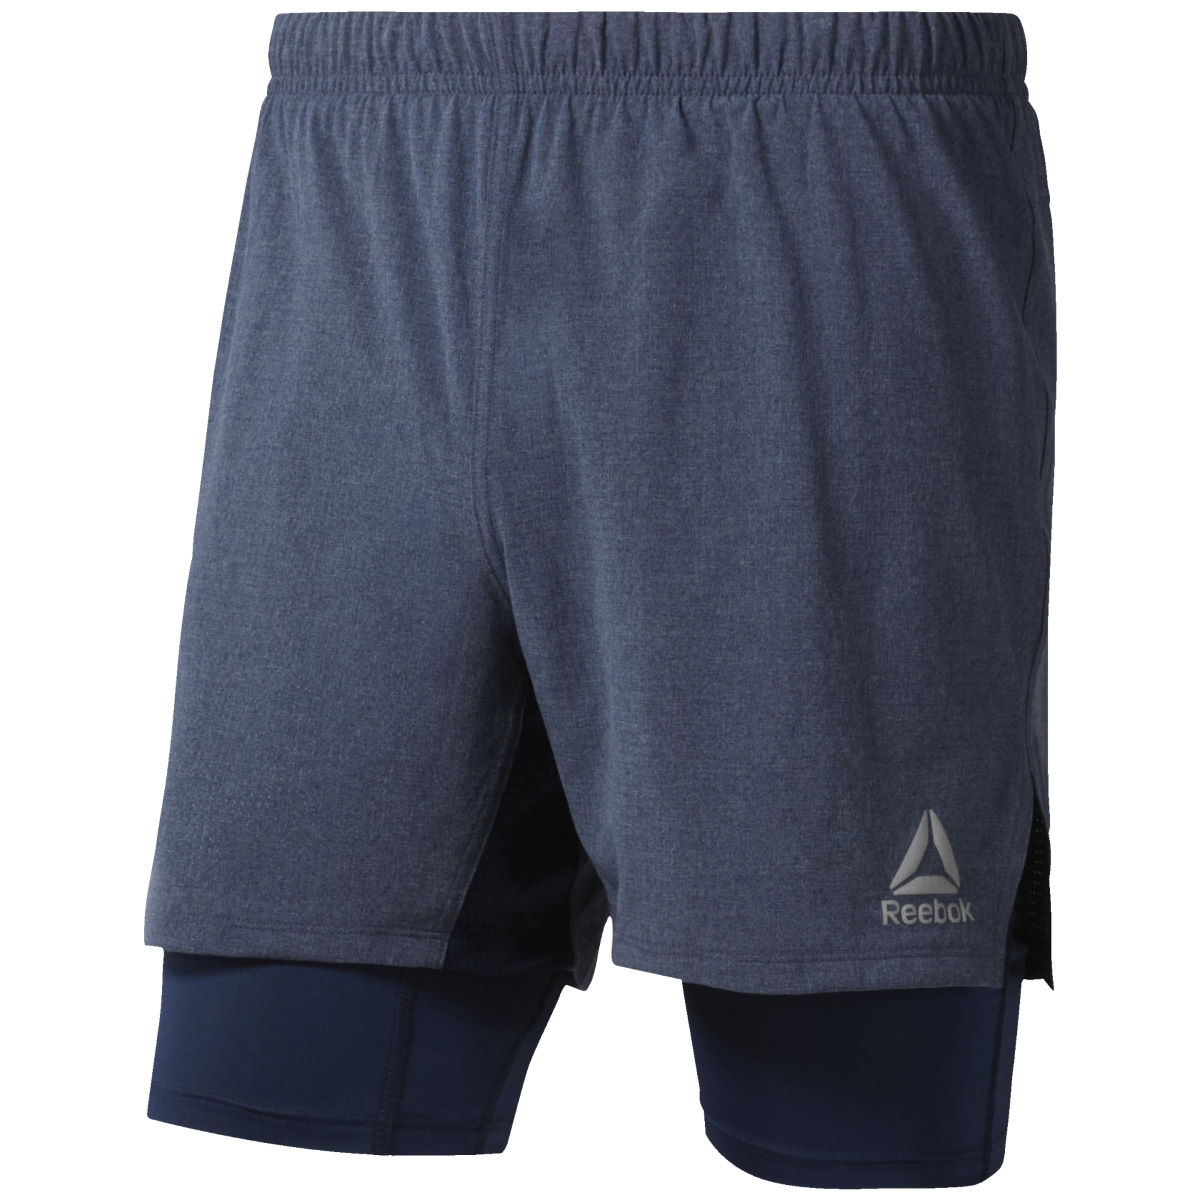 Short Reebok One Series (2 en 1) - XXL Collegiate Navy